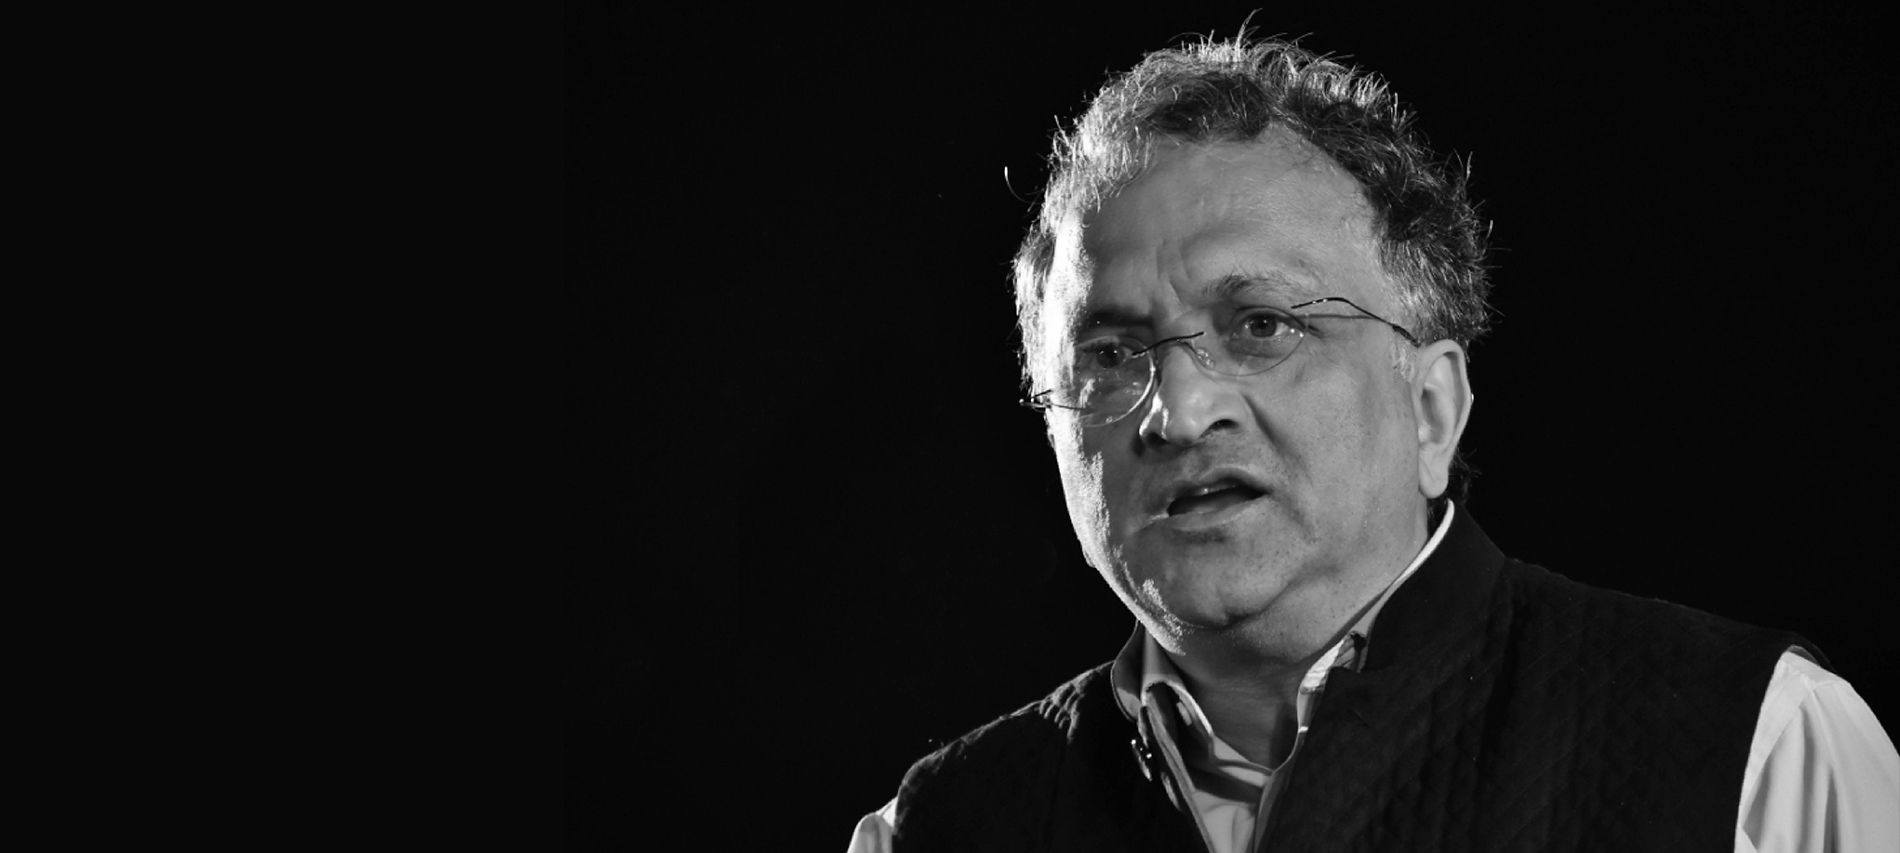 Ramachandra Guha and some thoughts on Politics in India